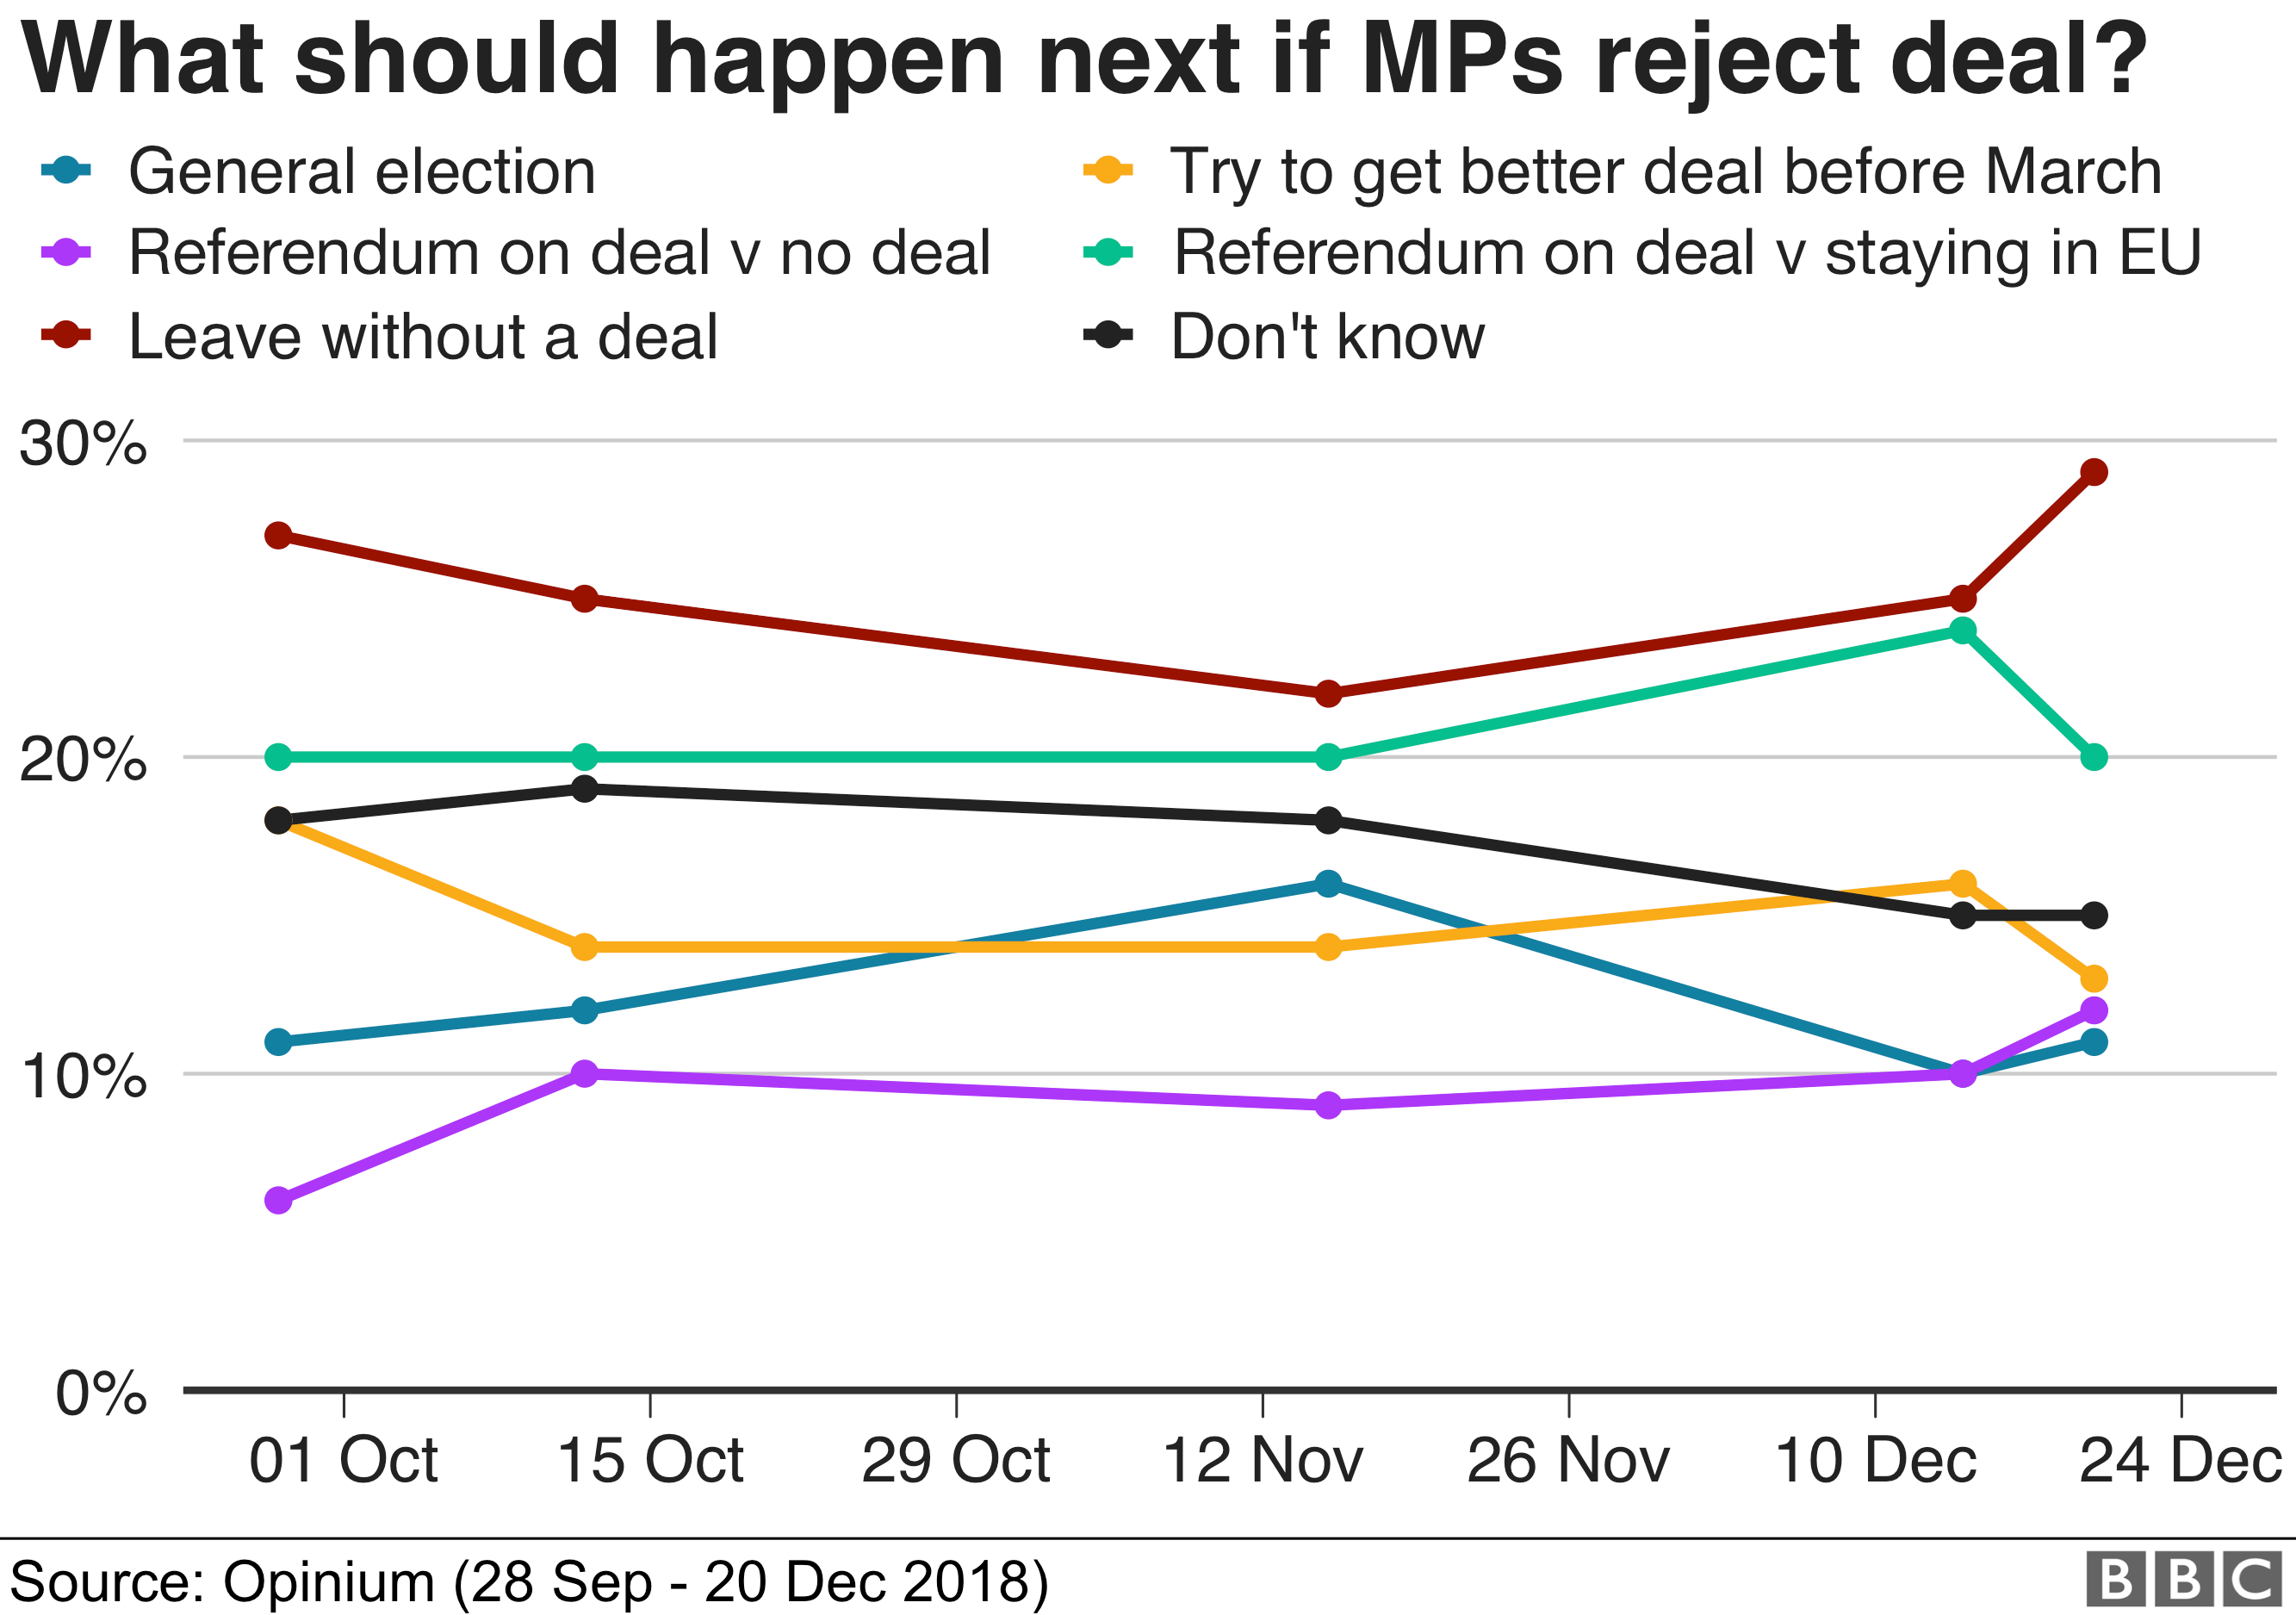 What should happen if MPs reject the deal?